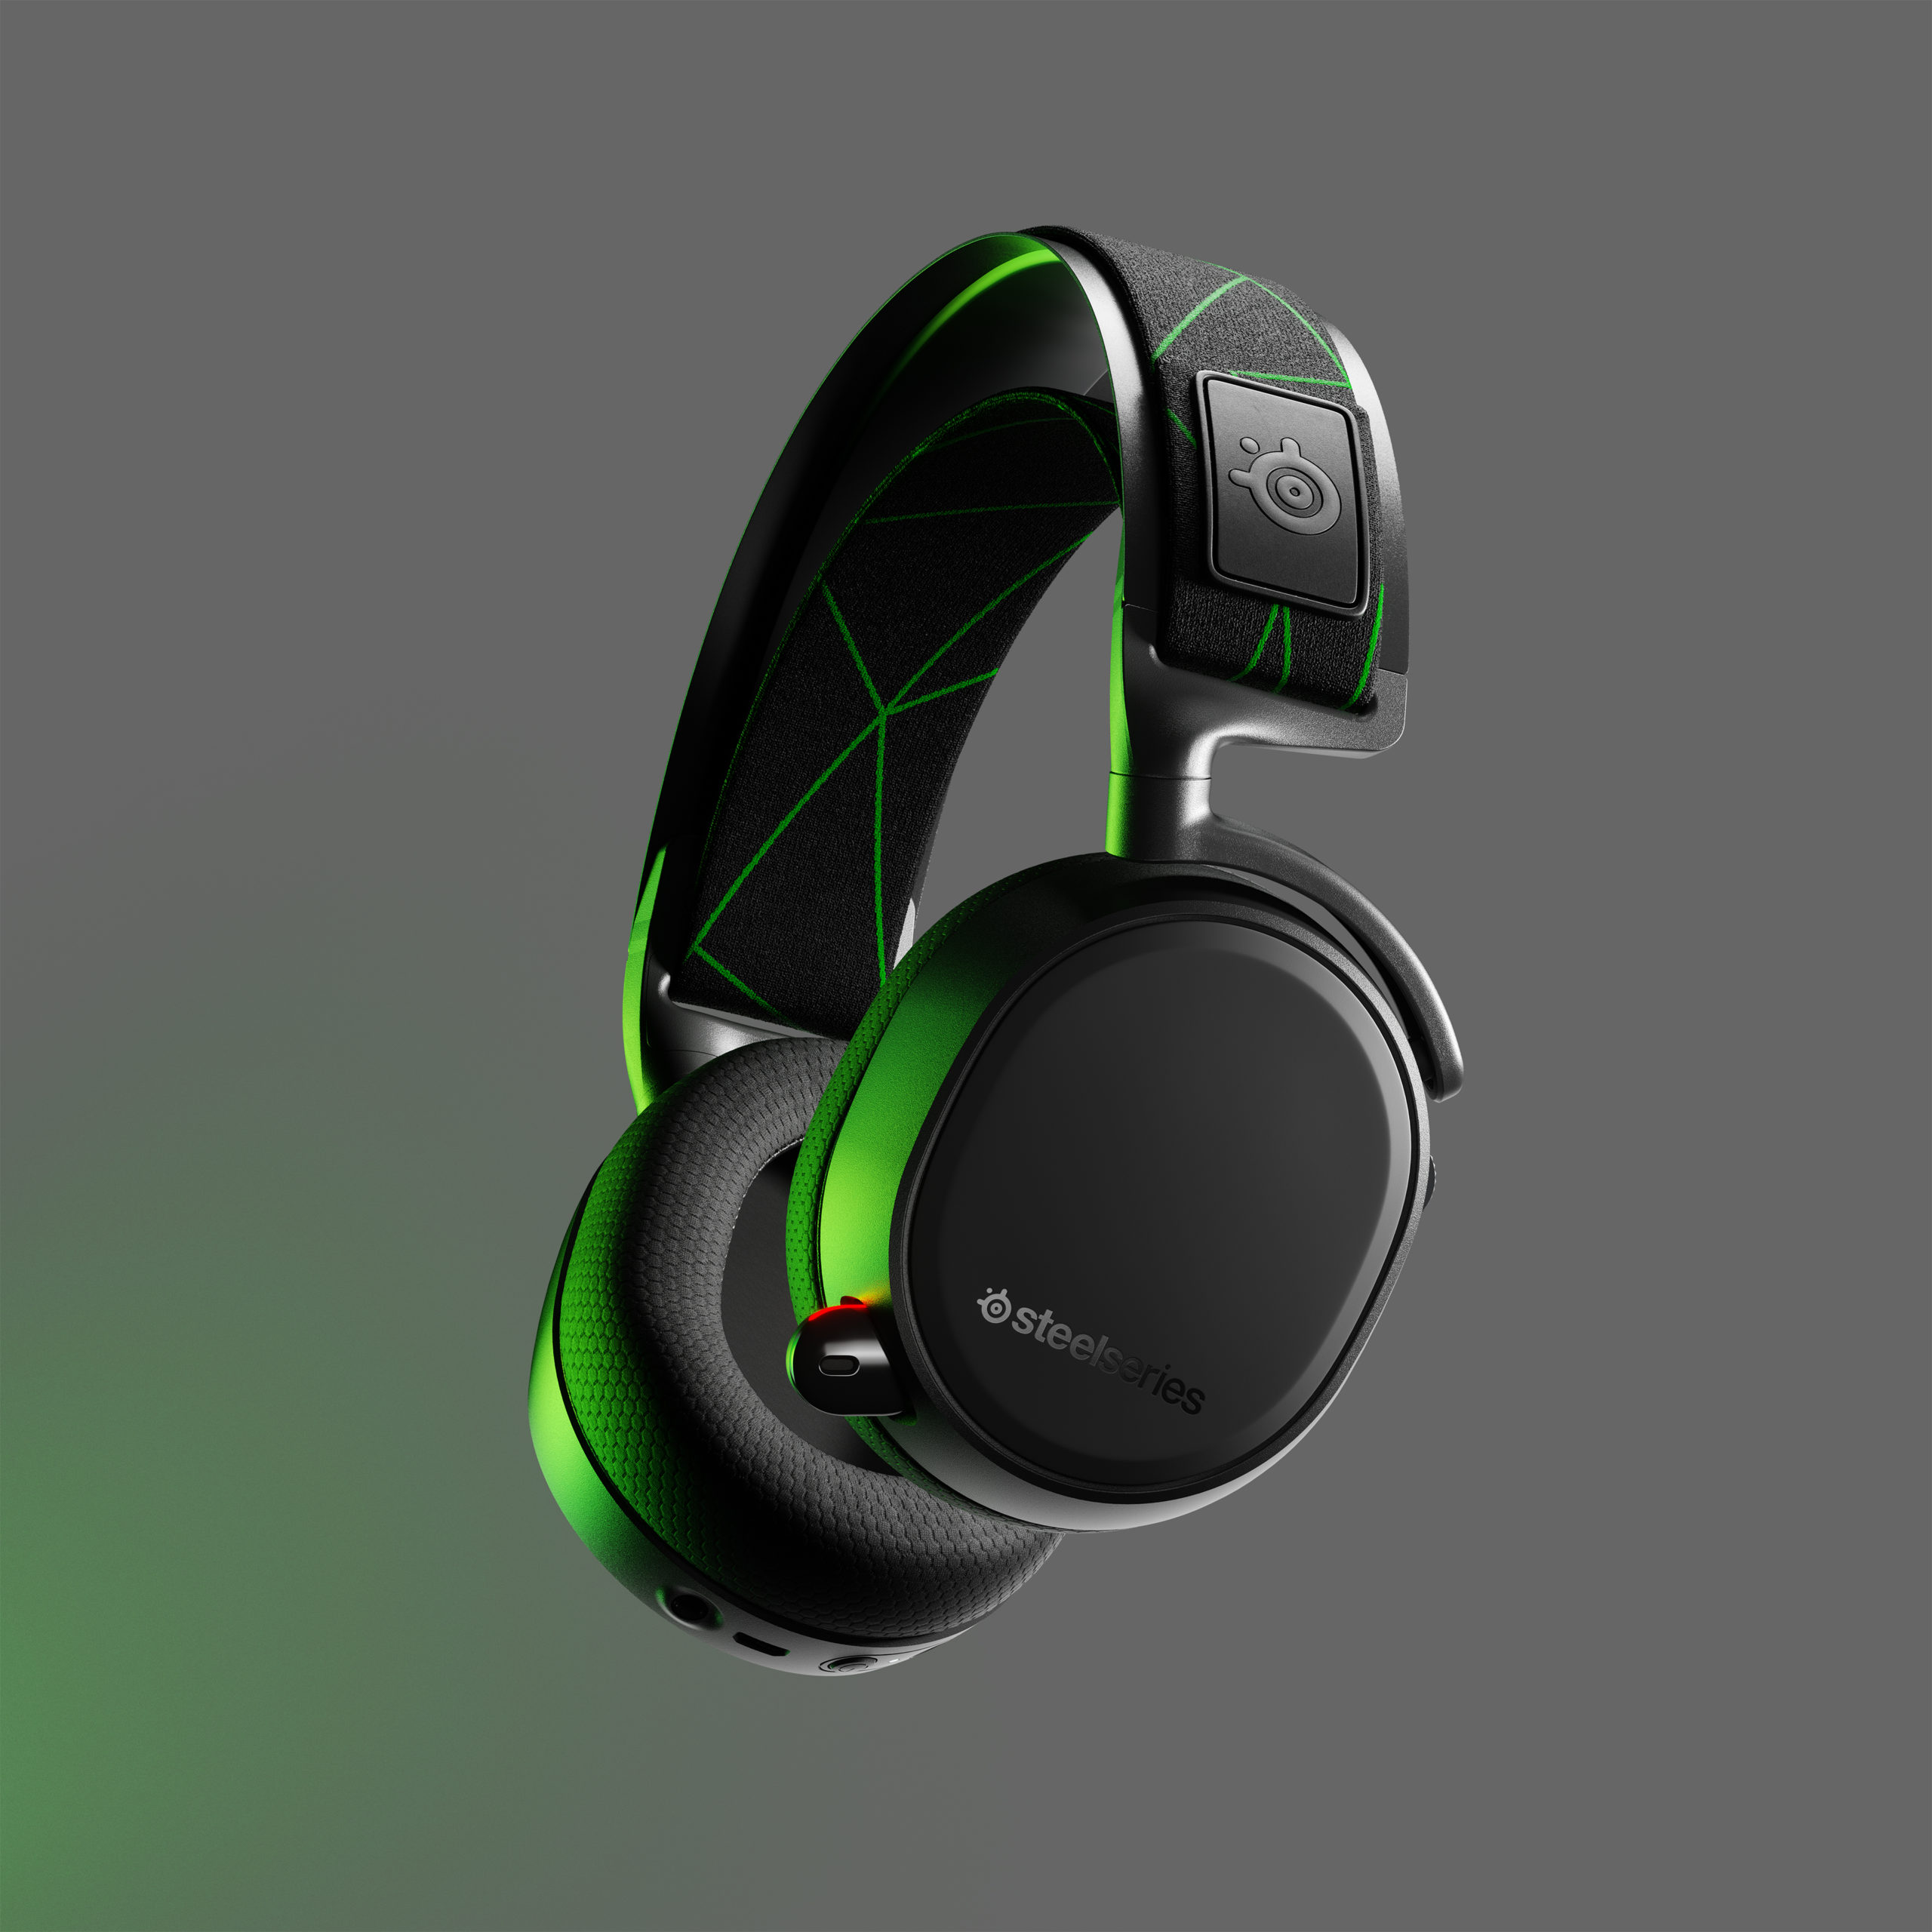 steelseries_a9x_01